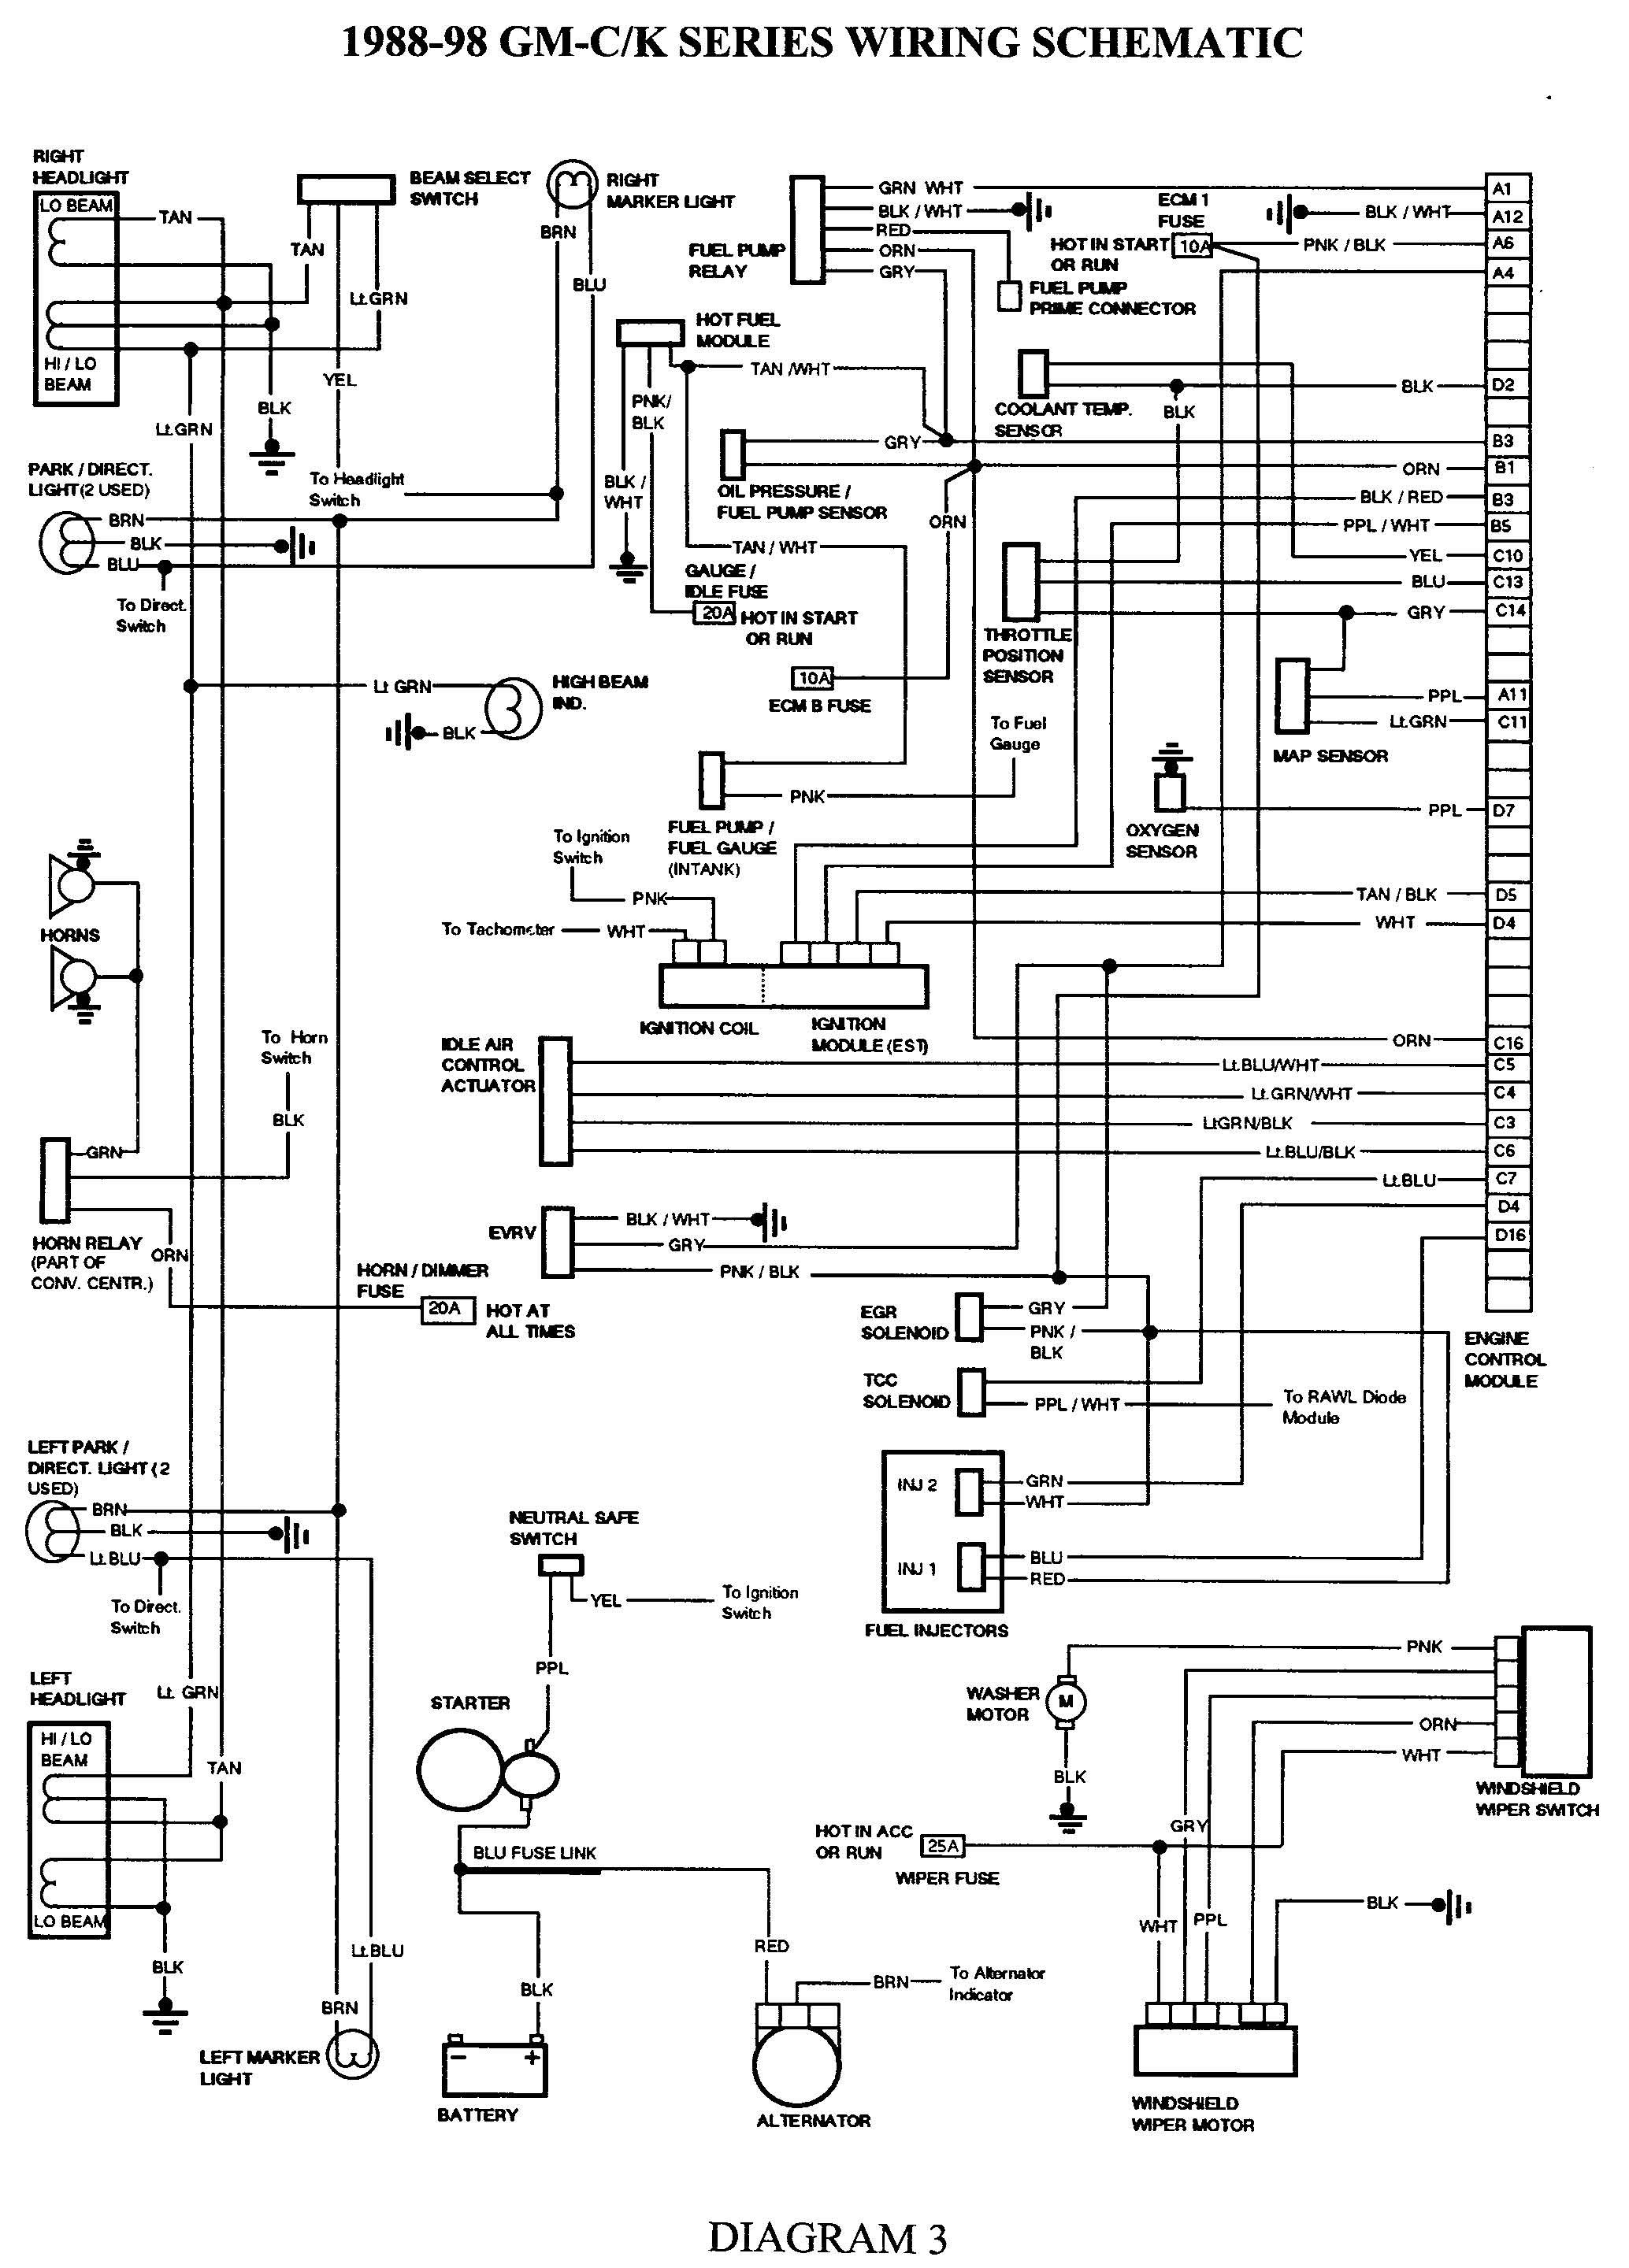 Hot Rod Wiring Diagram Download Combi Boiler Chevy Truck Data Gmc Diagrams On Gm Harness 88 98 Kc Connectors